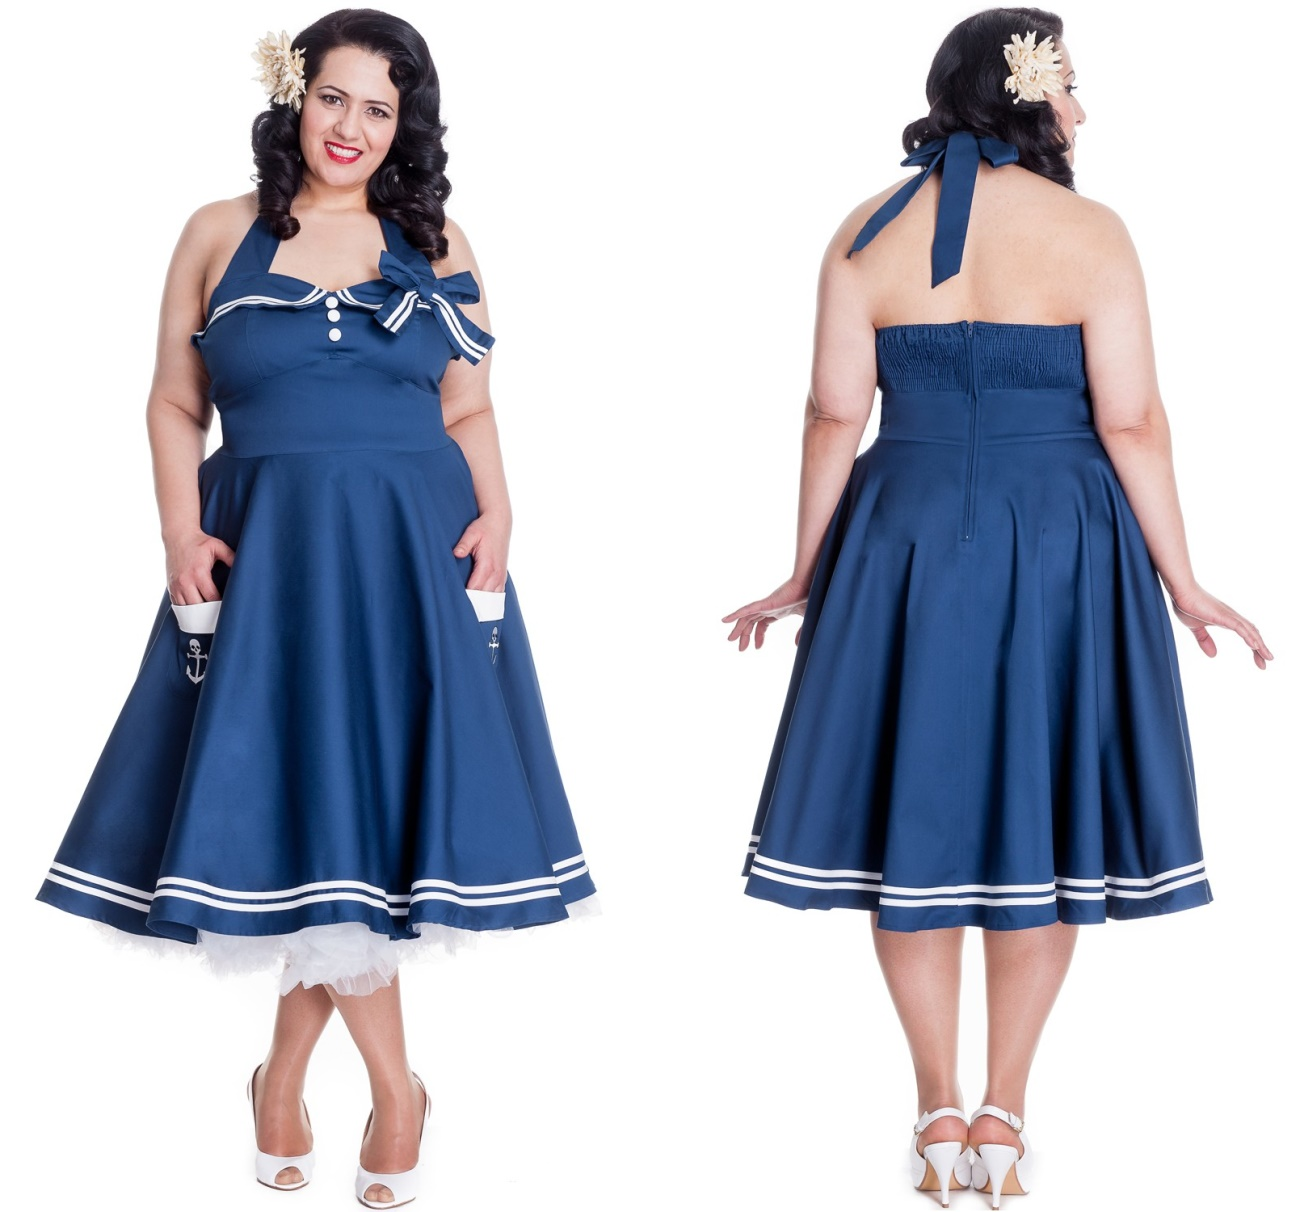 9069443c677a Motley 50 s Dress Rock n Roll Kleid Übergrösse Hellbunny - Hellbunny bei  Gothic Onlineshop - www.the-clash.de